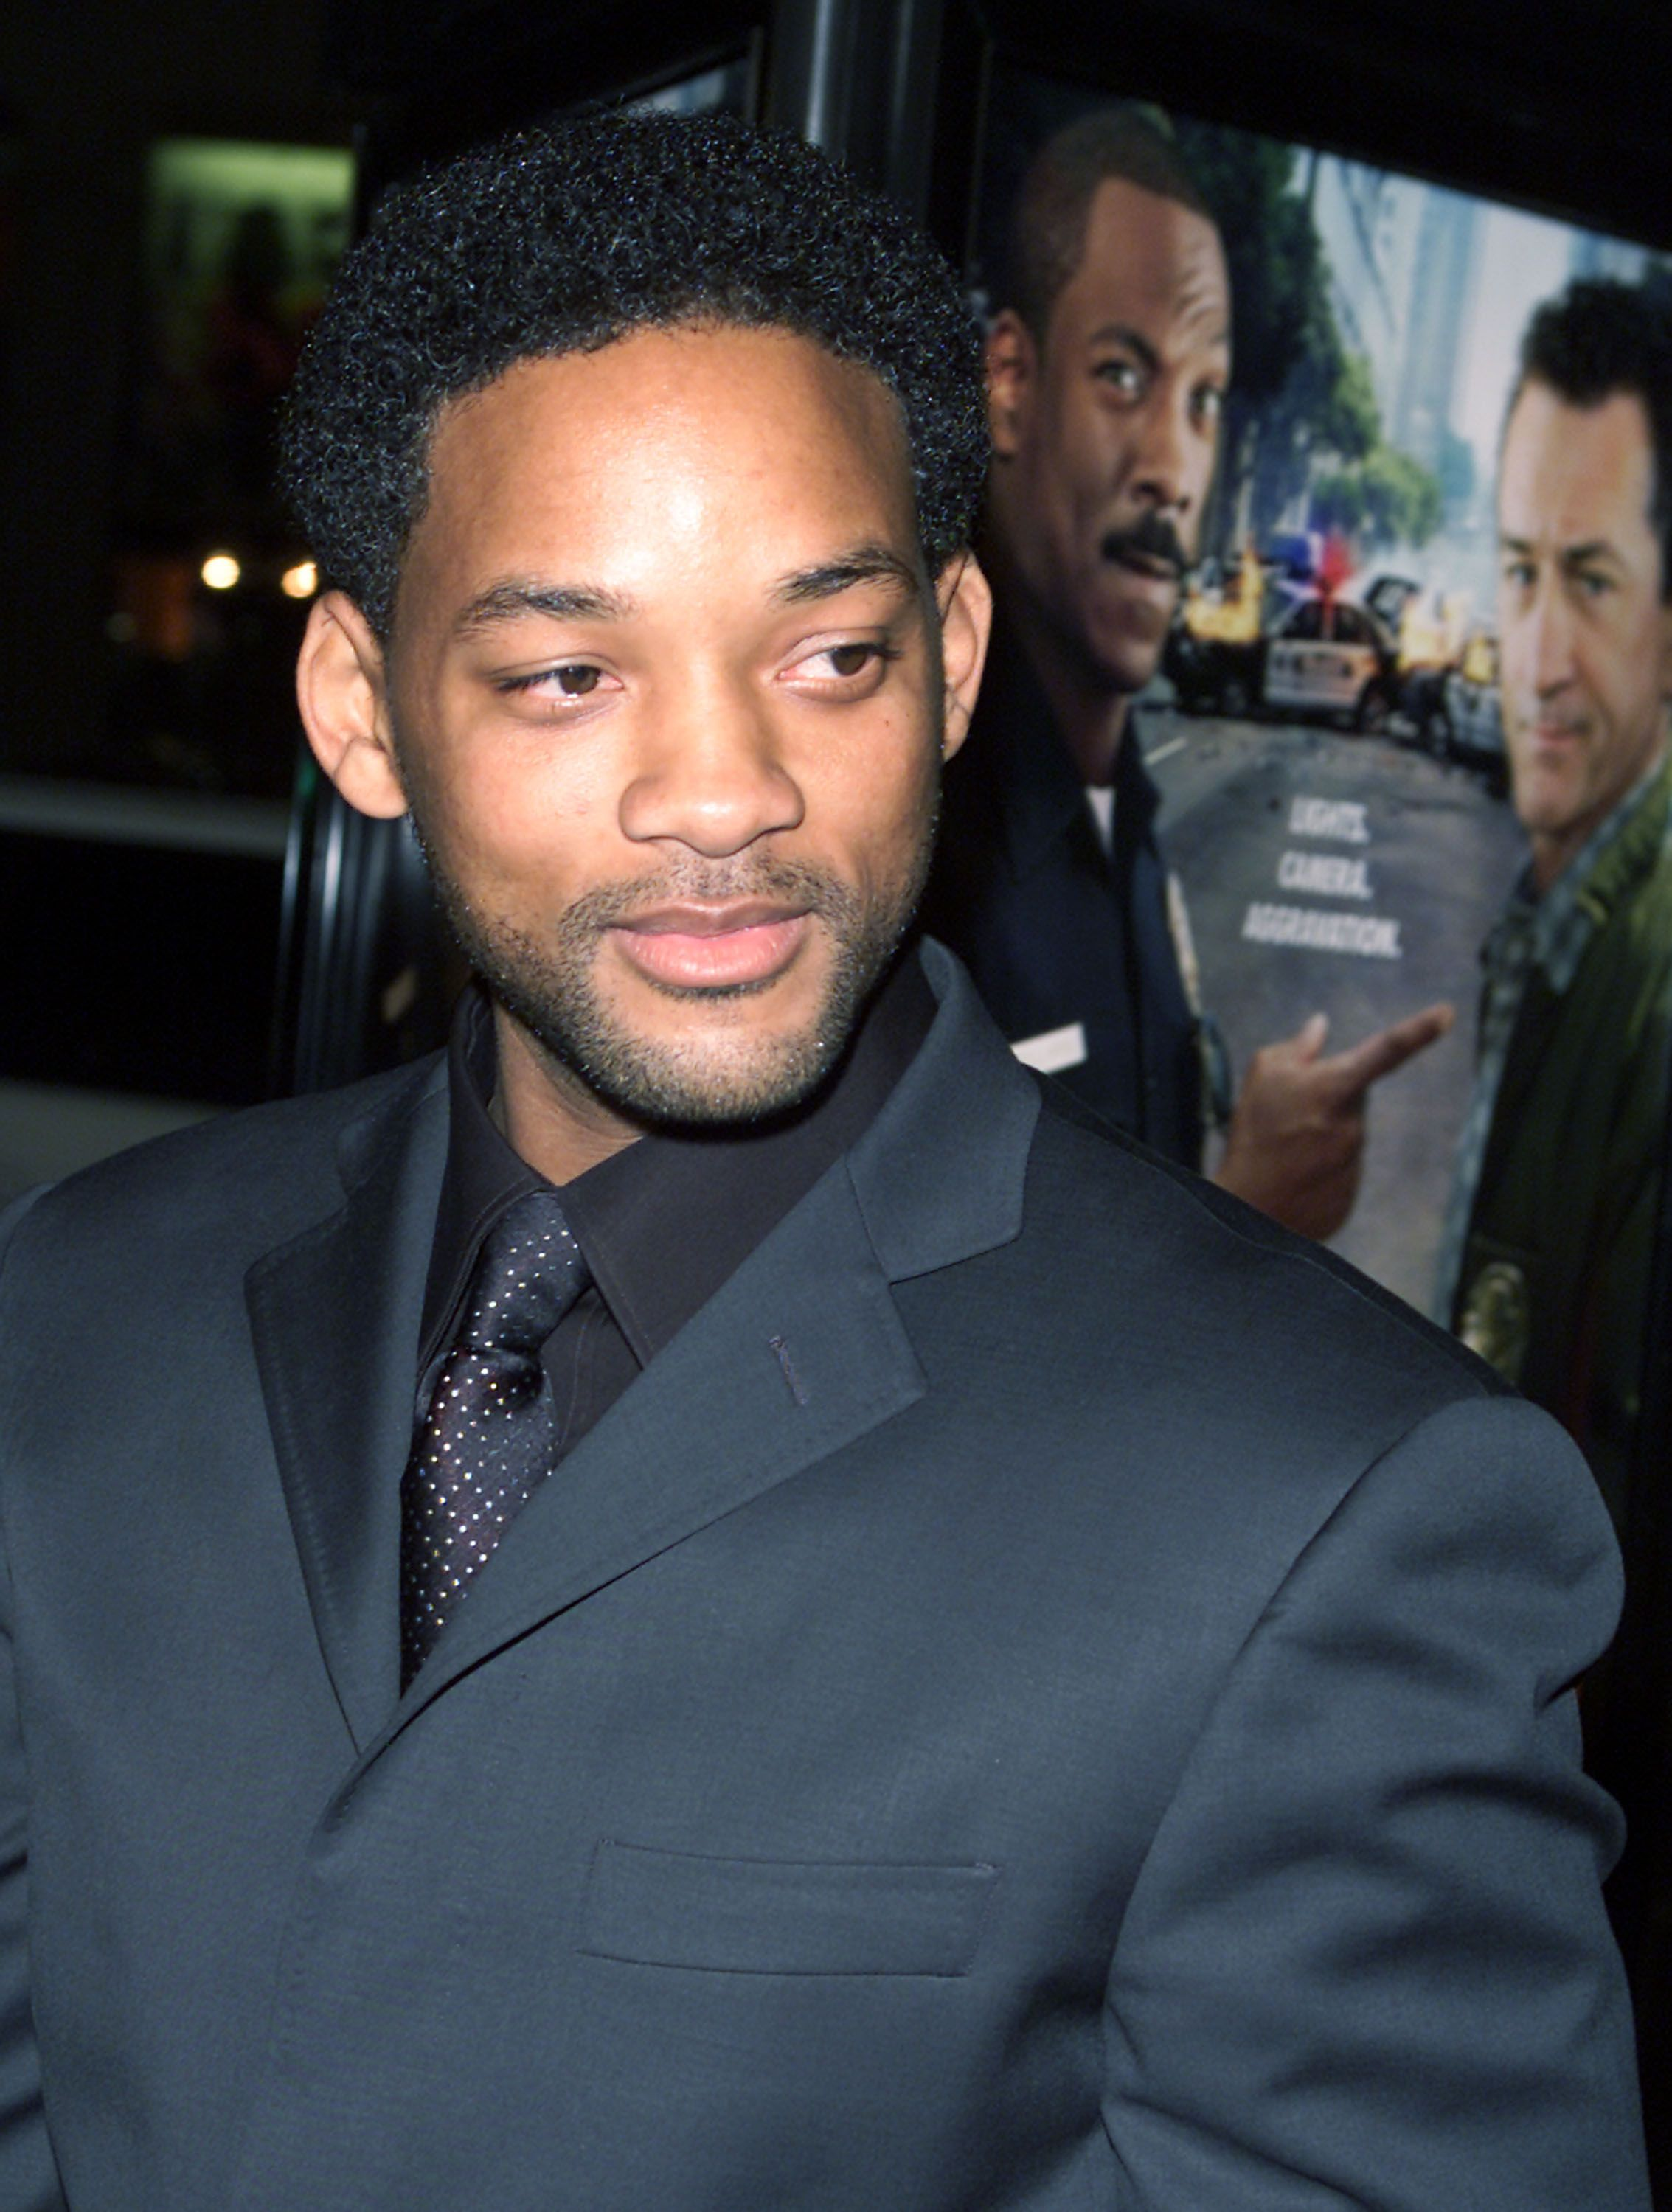 Will Smith attending a premiere in Los Angeles on Monday, March 11, 2002.   Photo: Getty Images